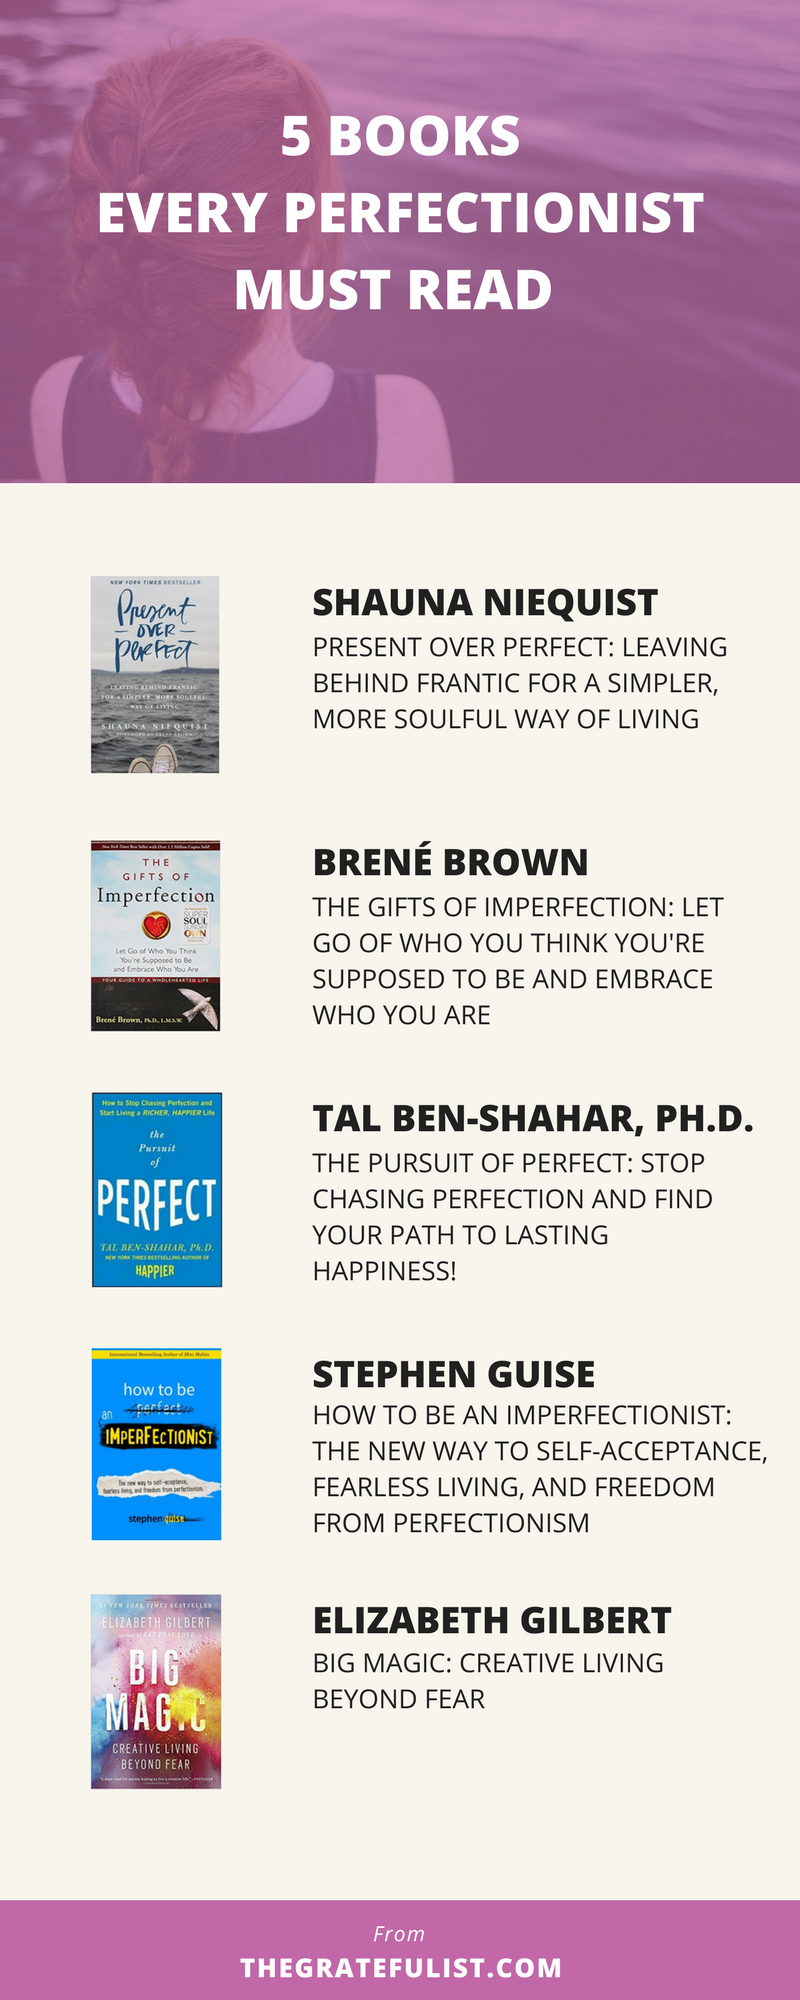 Tired of being a perfectionist? These 5 books are a must-read if you want to let go of your perfectionism. Plus, there's a freebie waiting for you! Overcoming perfectionism / recovering perfectionist / perfectionism quotes / perfectionism inspiration / progress not perfection / perfectionist / perfectionism definition / let go of perfectionism / stop being a perfectionist